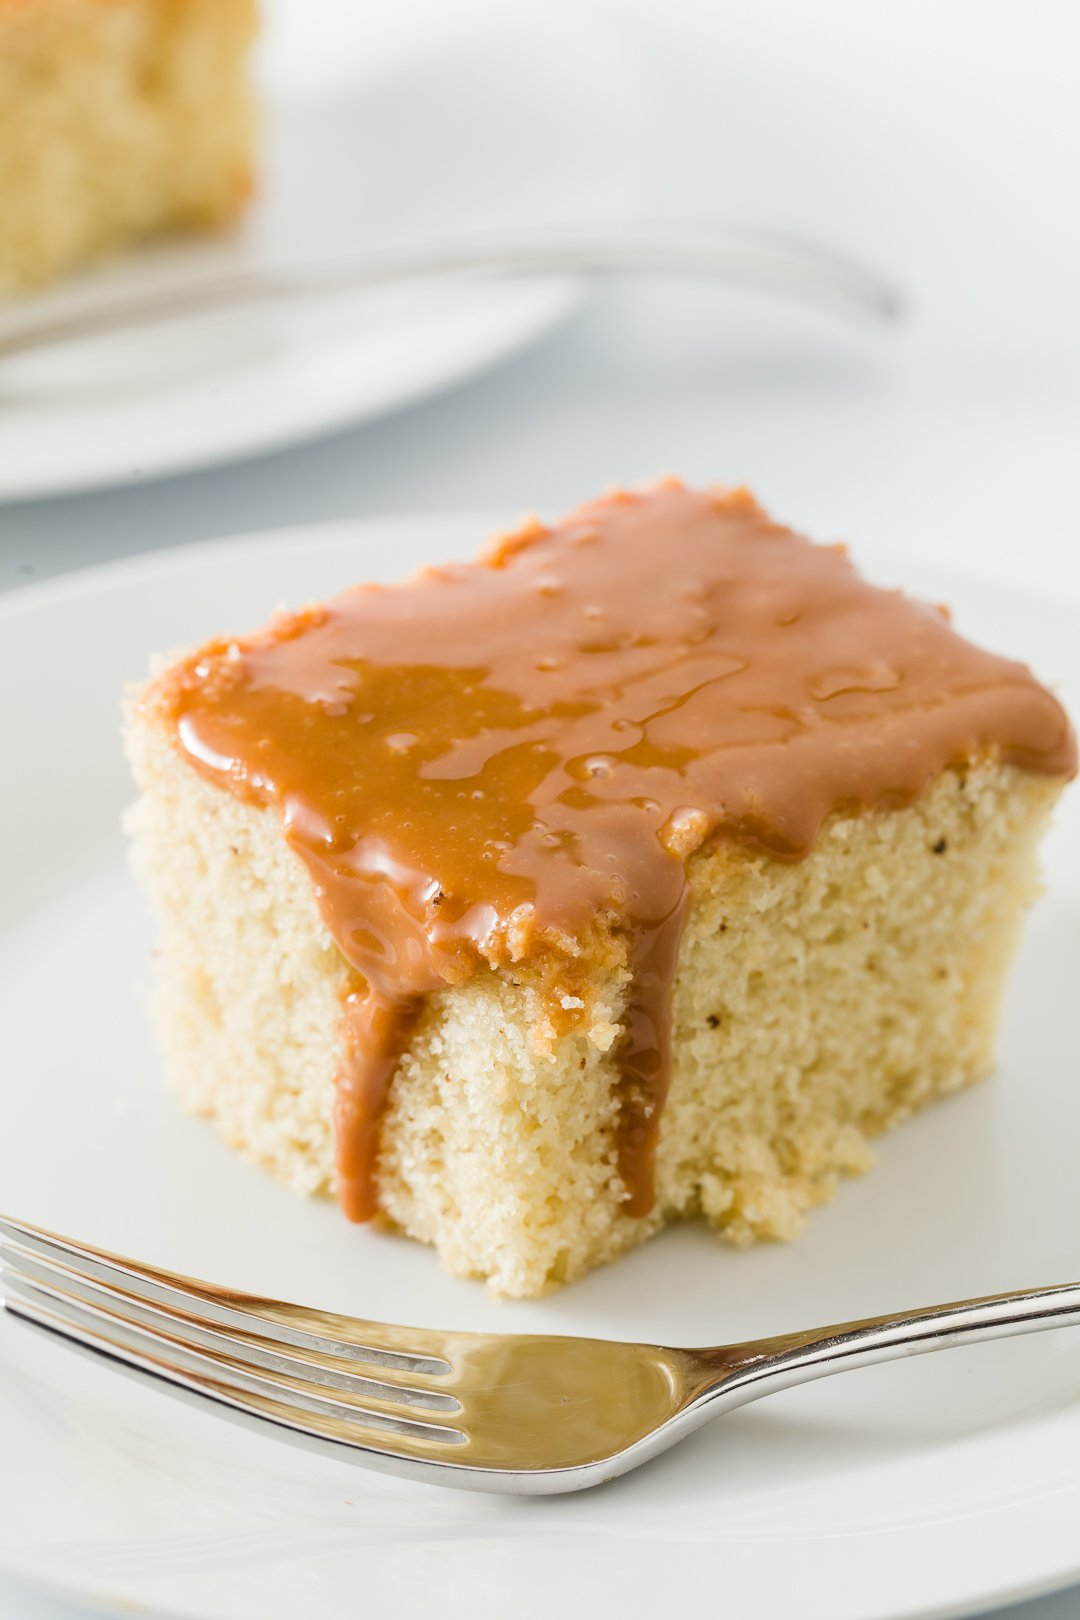 Slice of Dulce de leche cake on a plate with dulce de leche dripping down the side